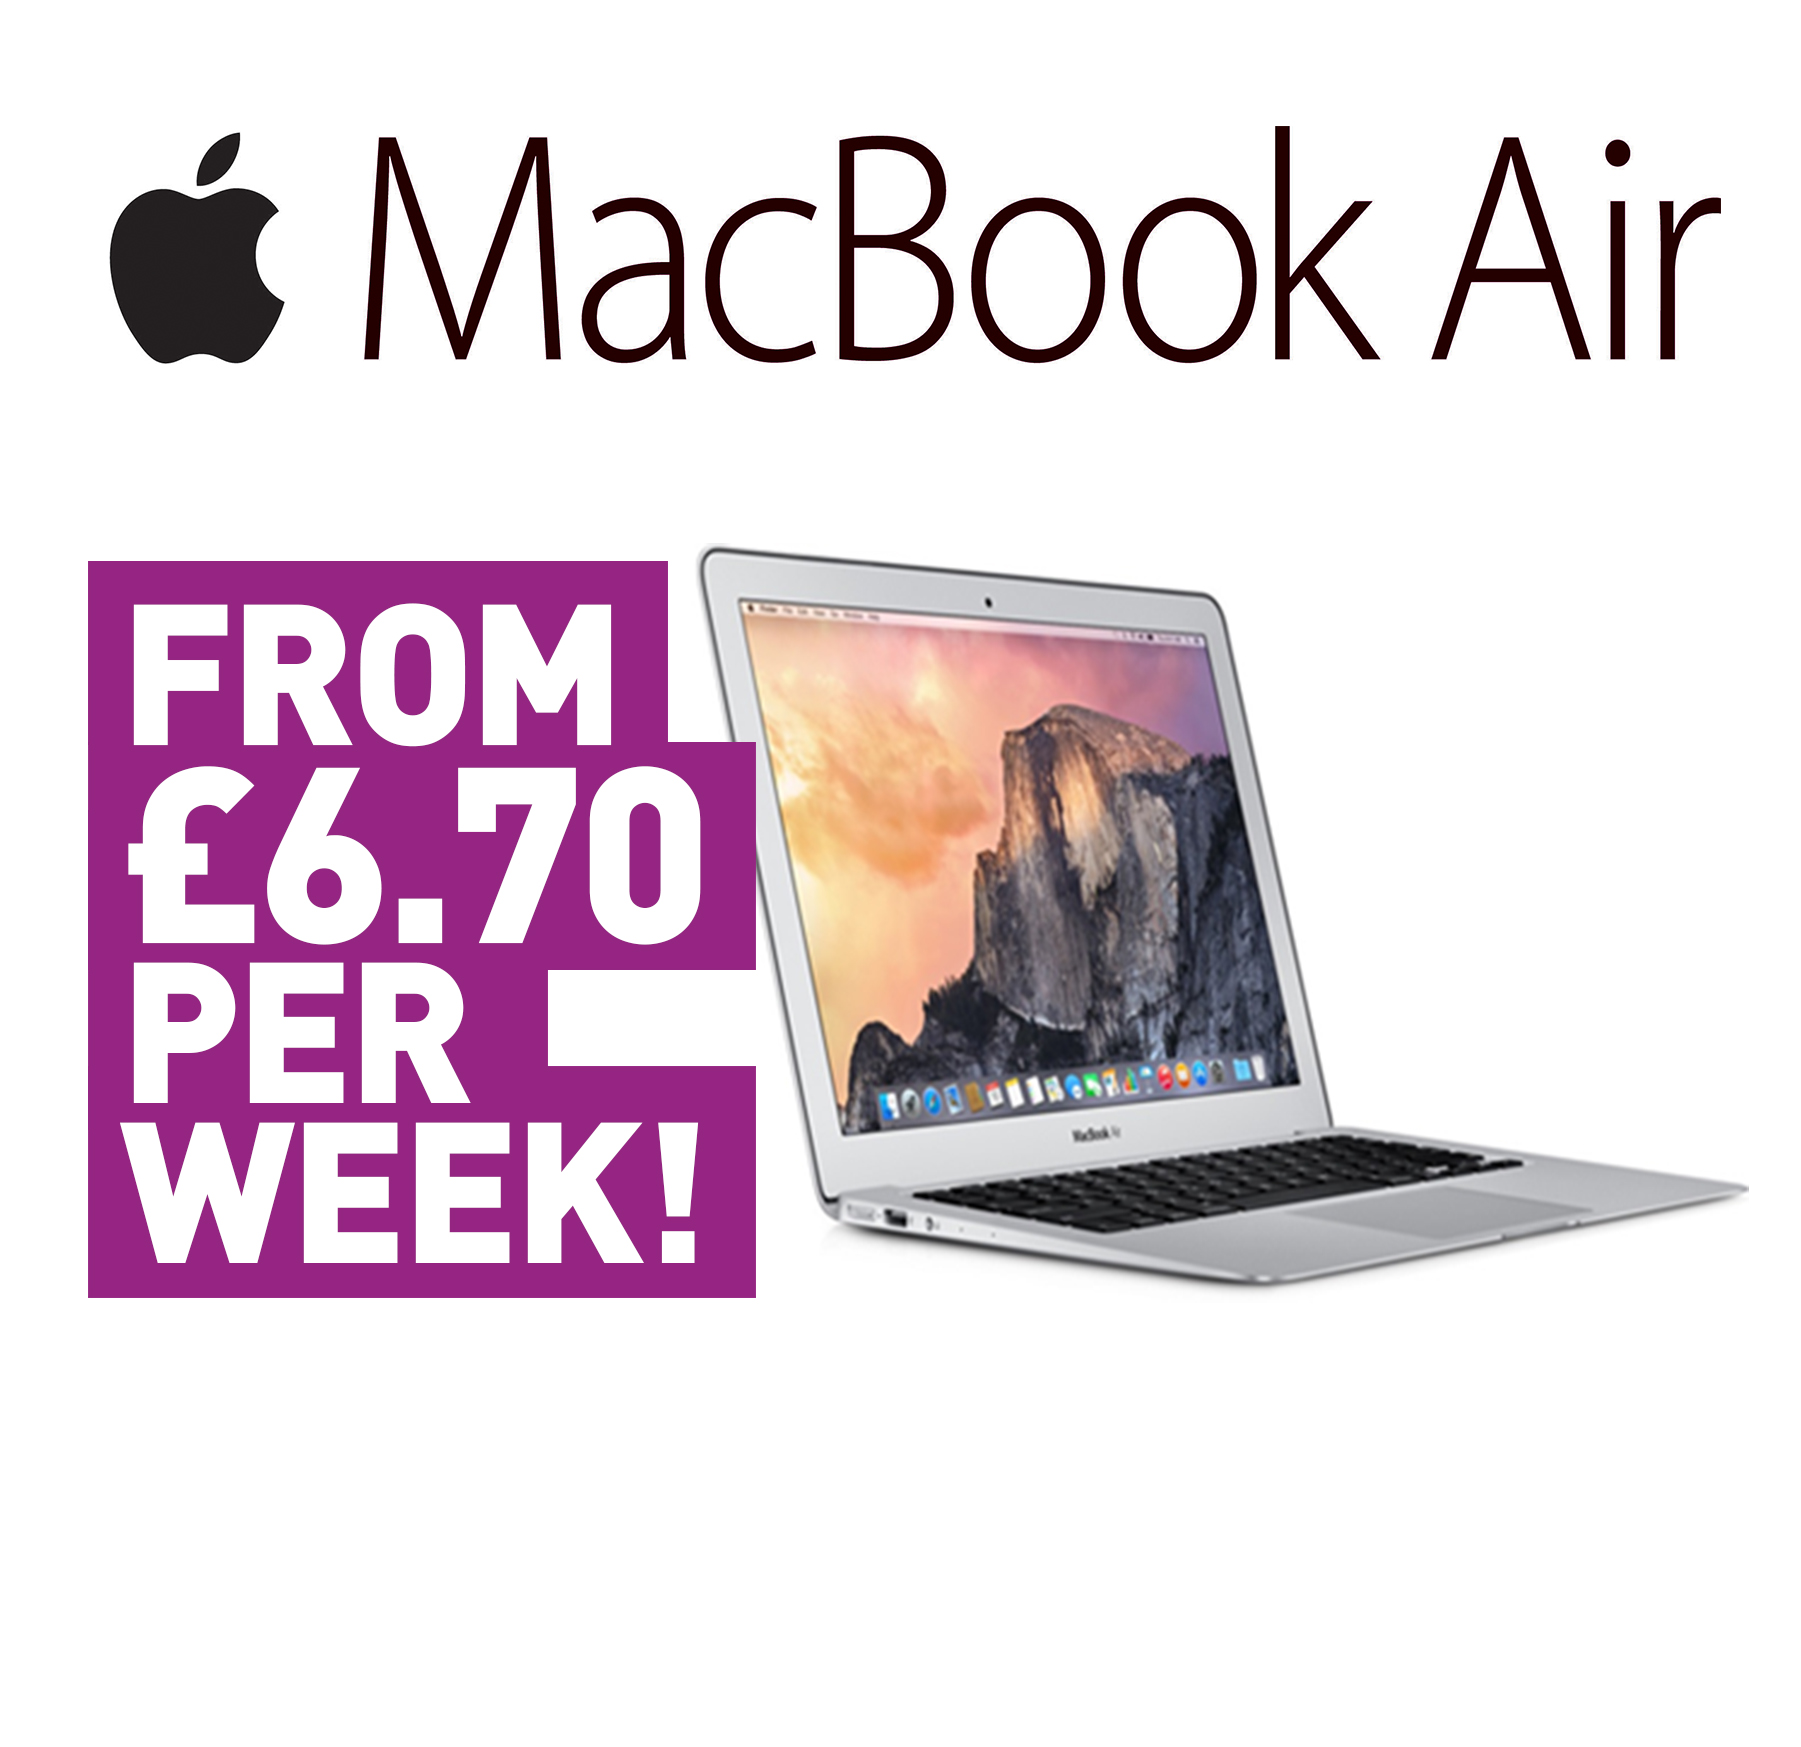 MacbookAirPromo2